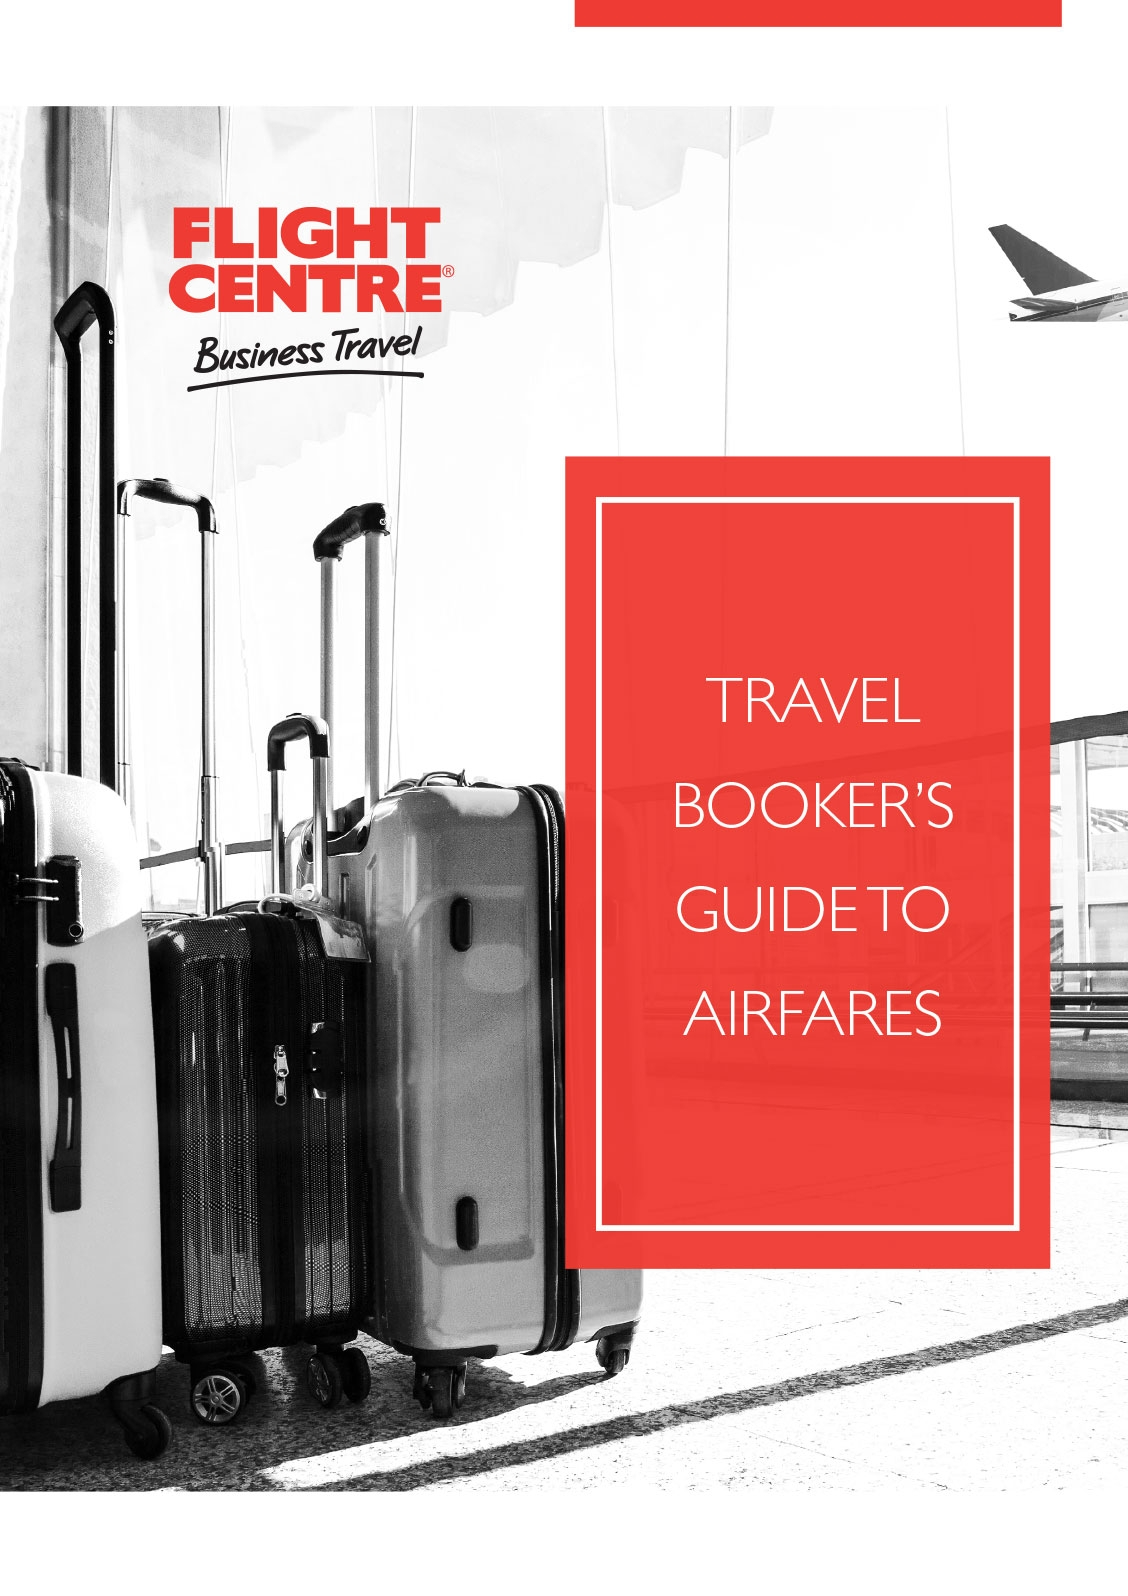 Travel Booker's Guide to Airfares